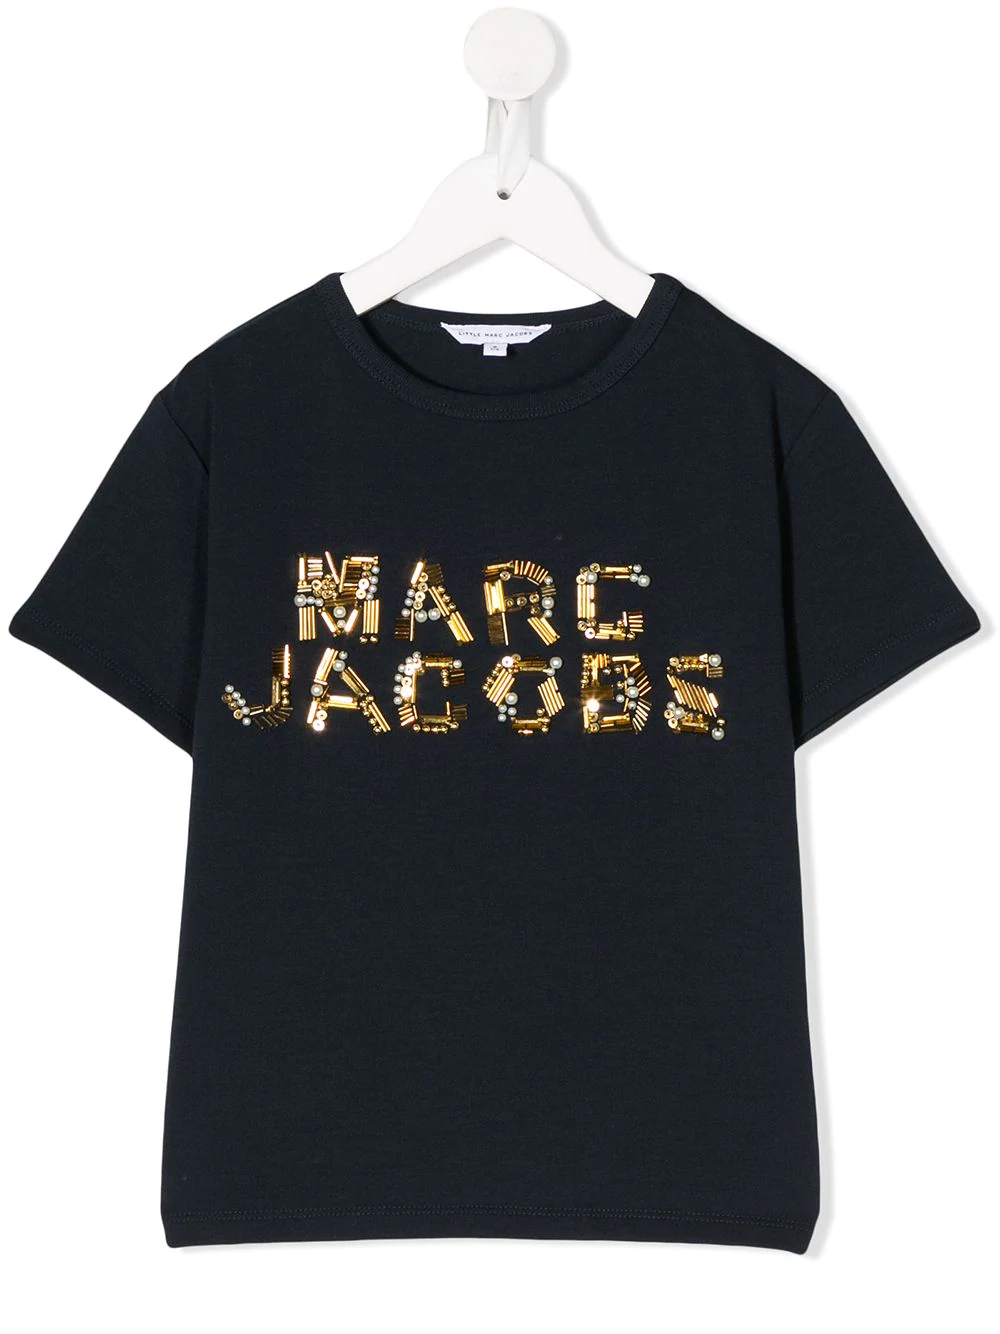 Shop Blue The Marc Jacobs Kids Logo Embellished T Shirt With Express Delivery Farfetch In 2021 Marc Jacobs Logo Little Marc Jacobs Kids Logo